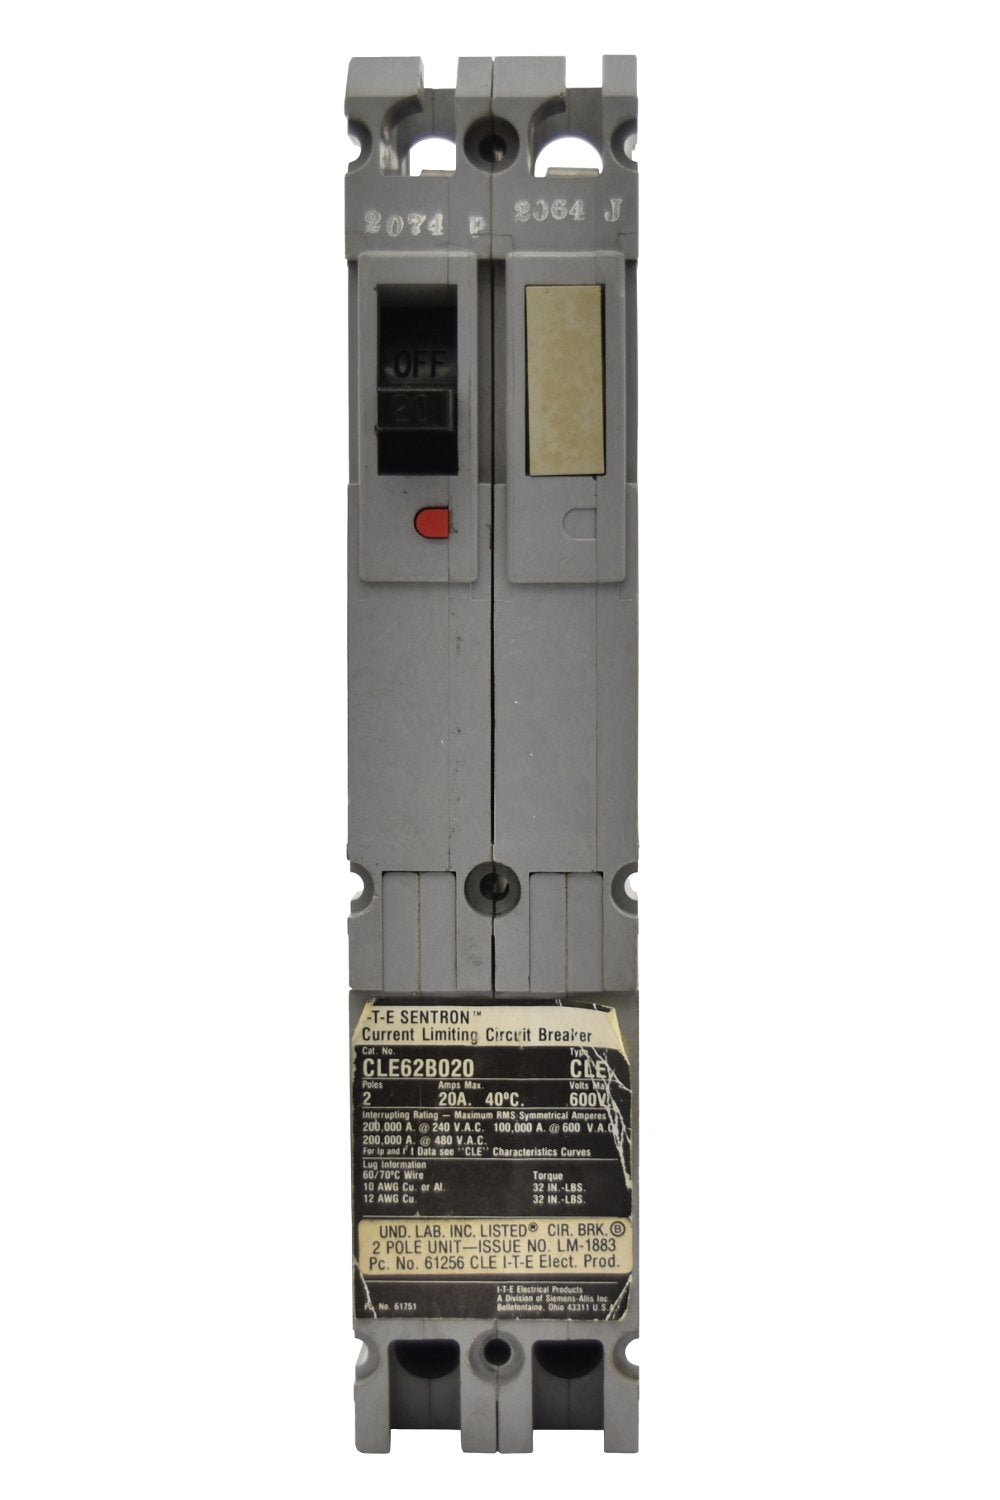 Siemens CLE62B070 Circuit Breakers